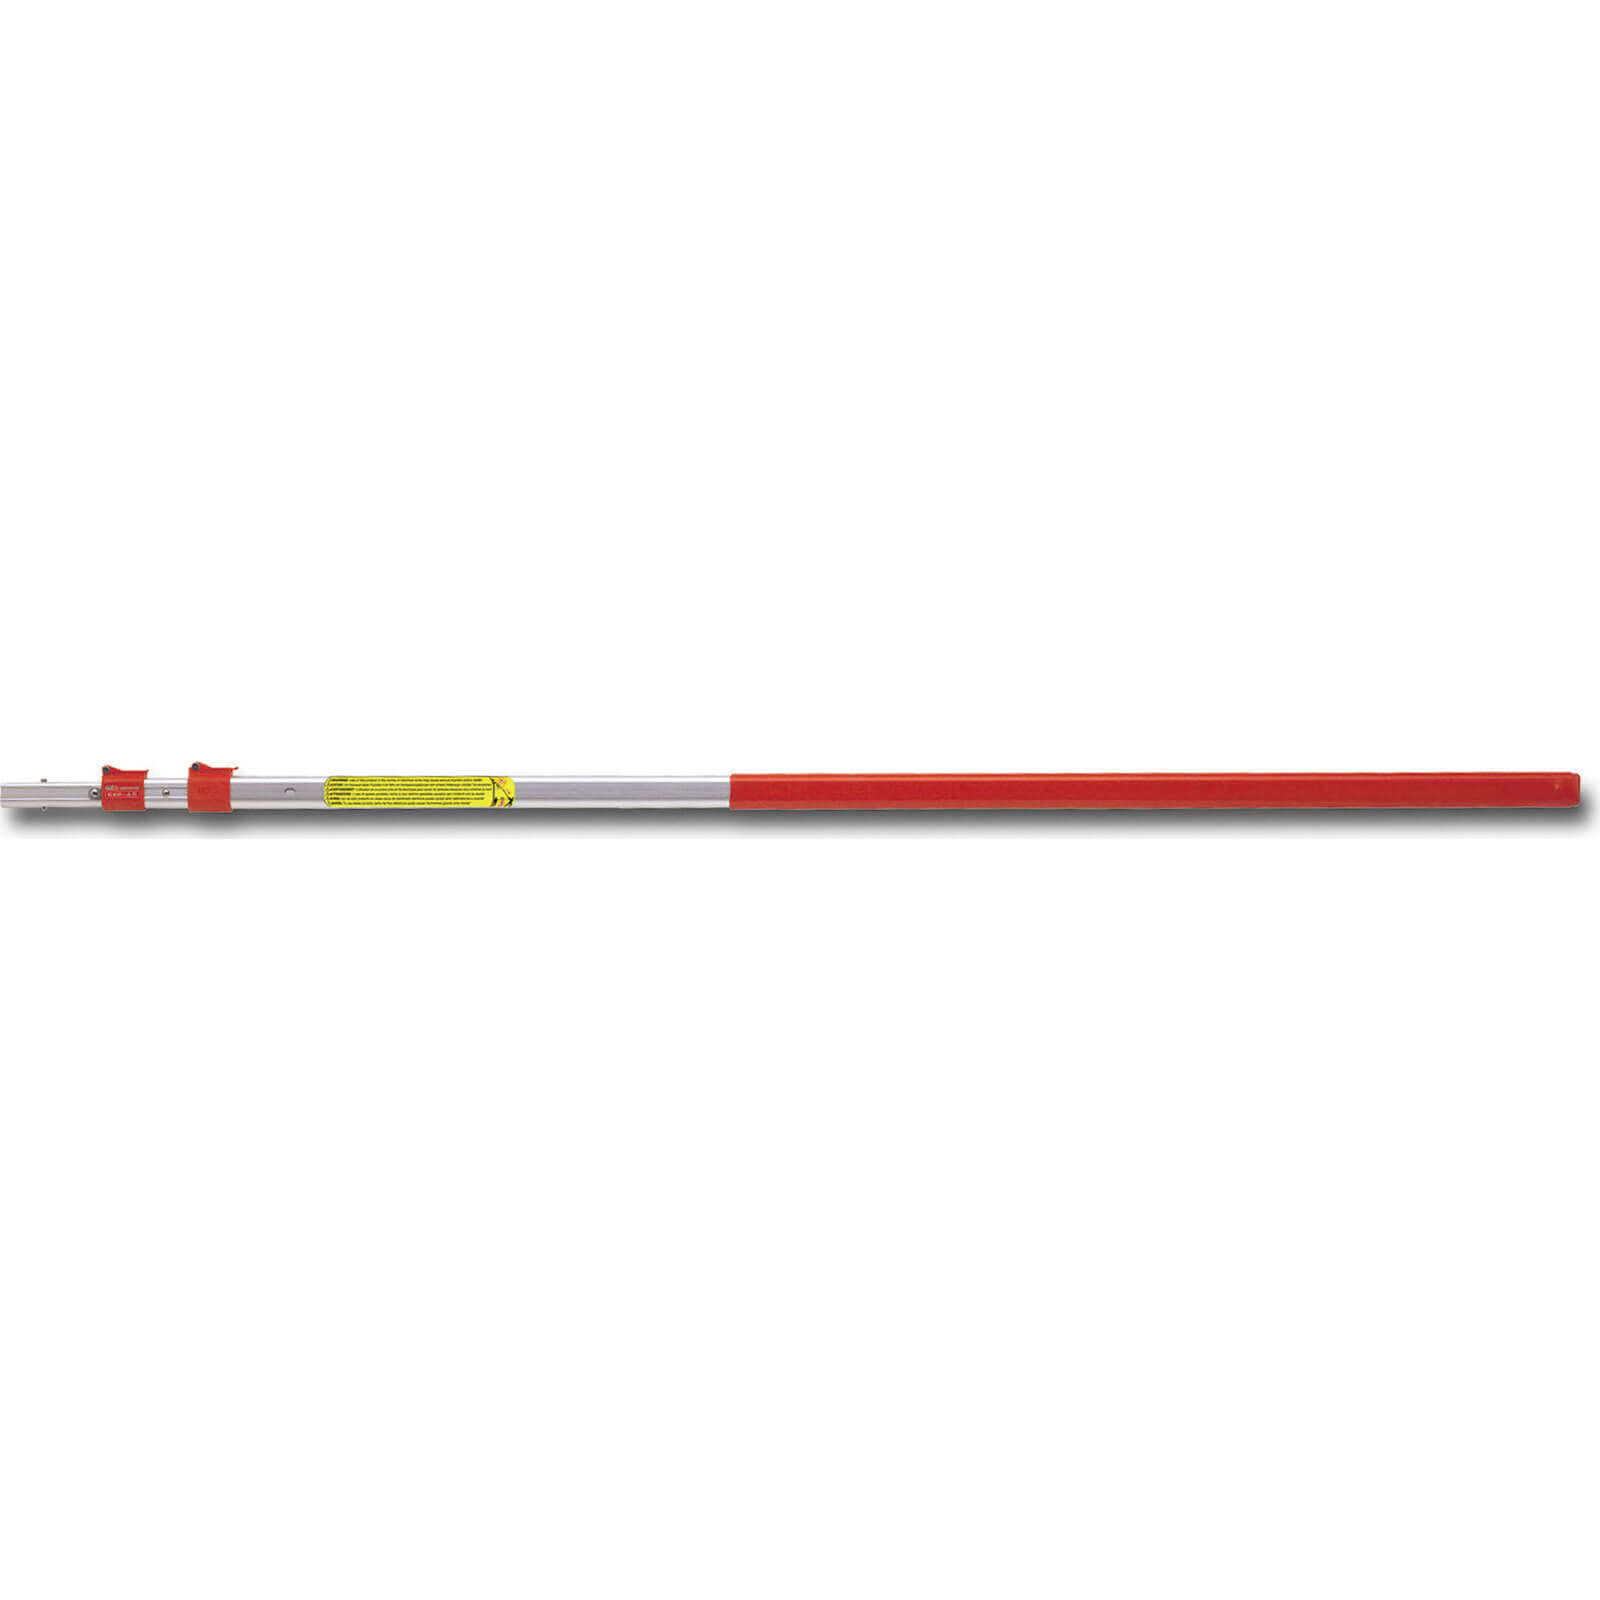 ARS EXP Telescopic Pole for Pole Saw Heads 4.5m